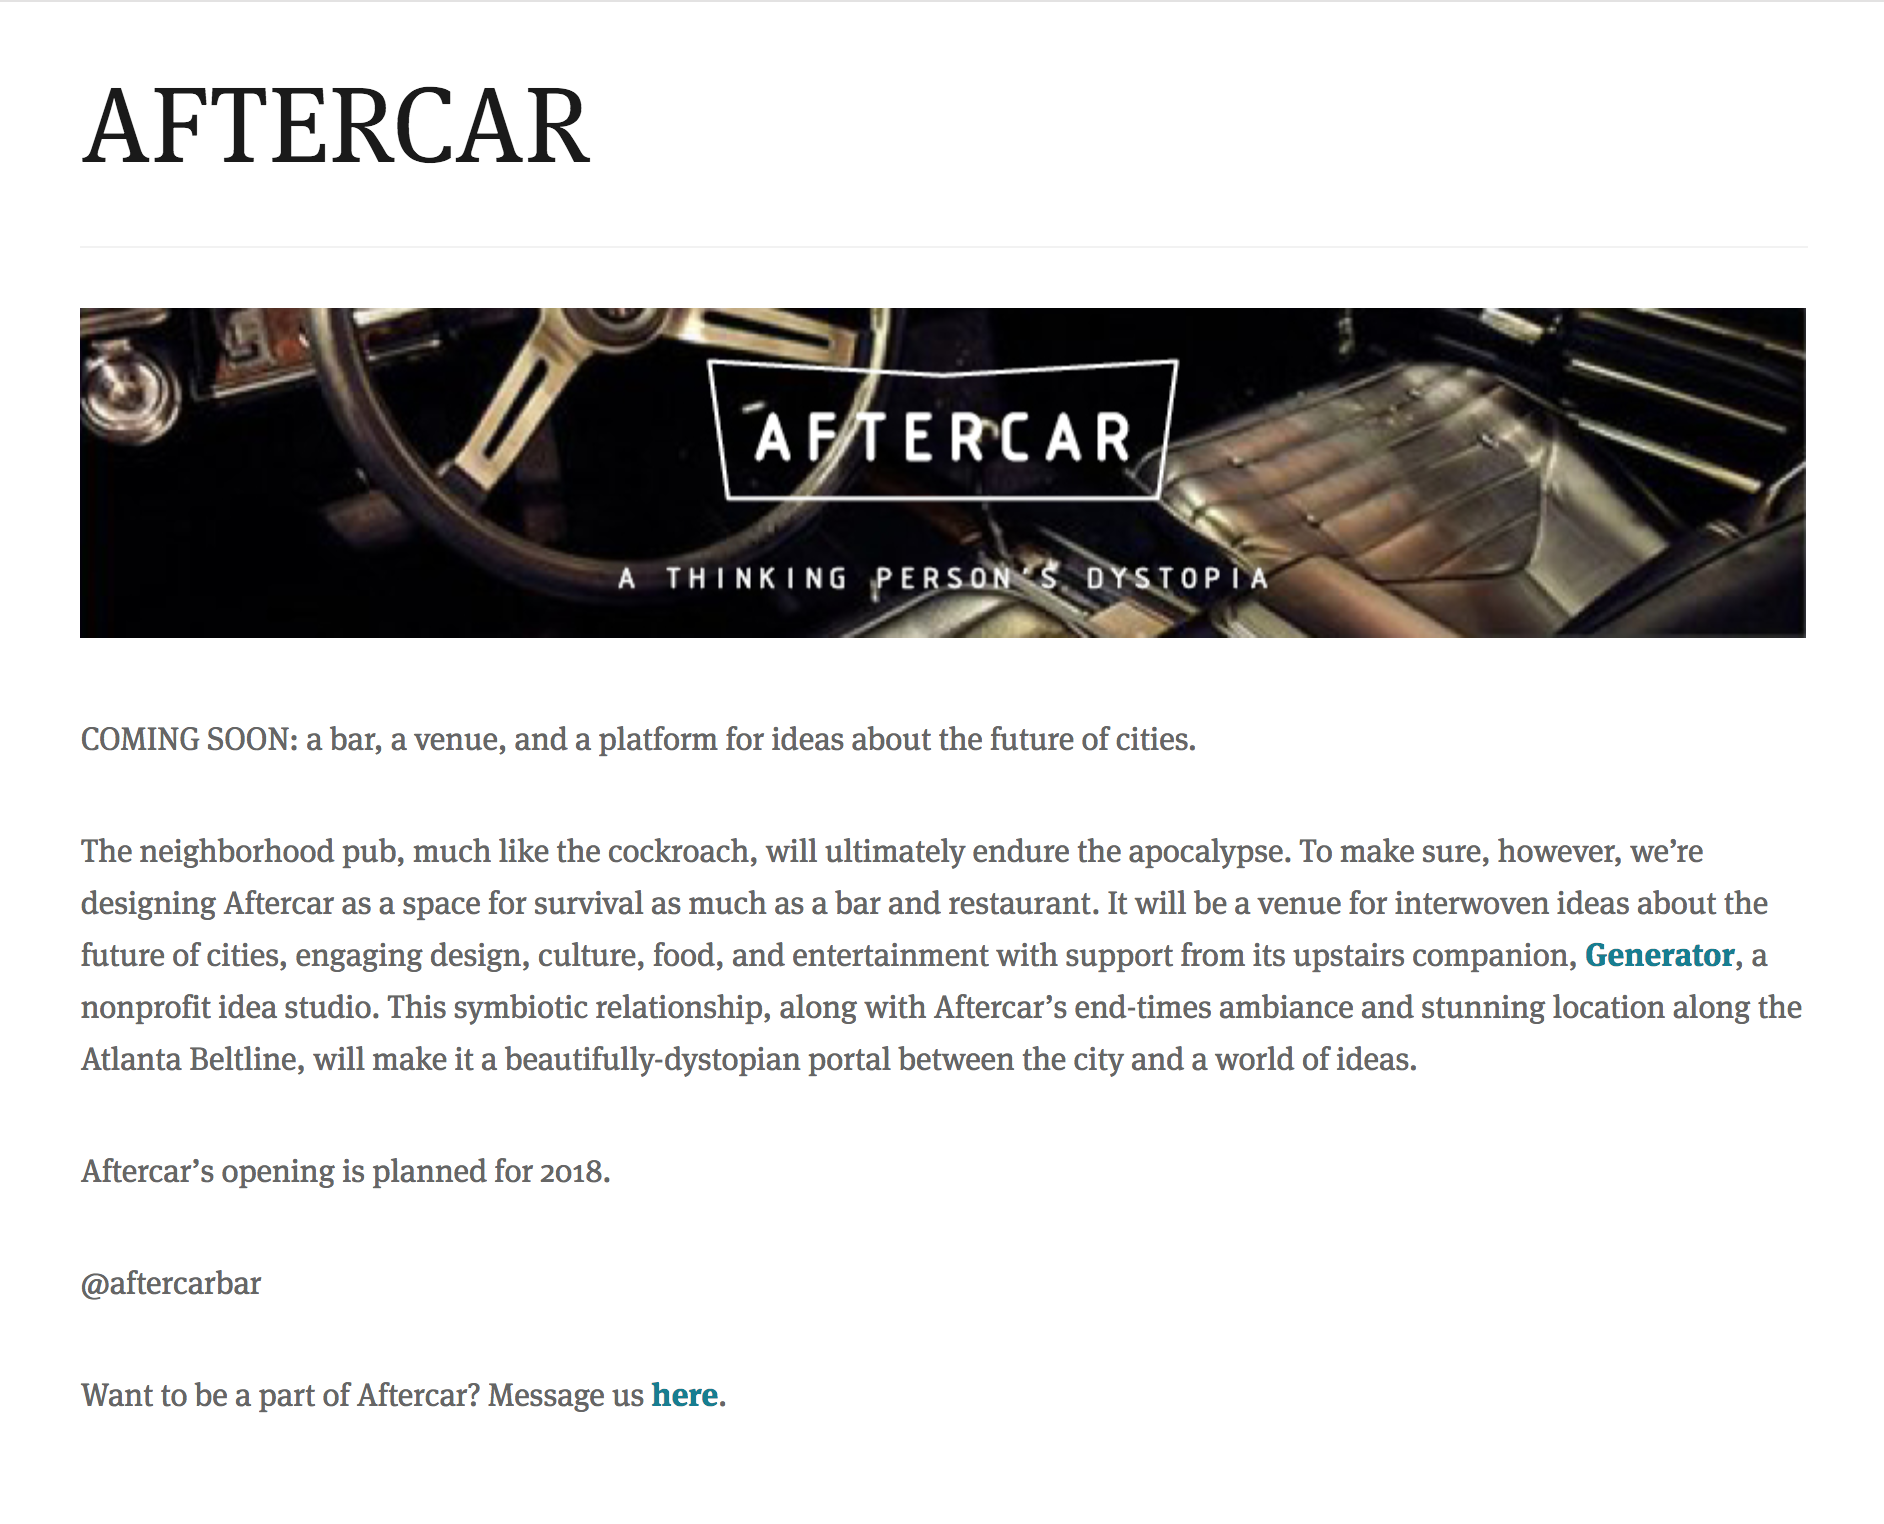 Aftercar: A Thinking Person's Dystopia